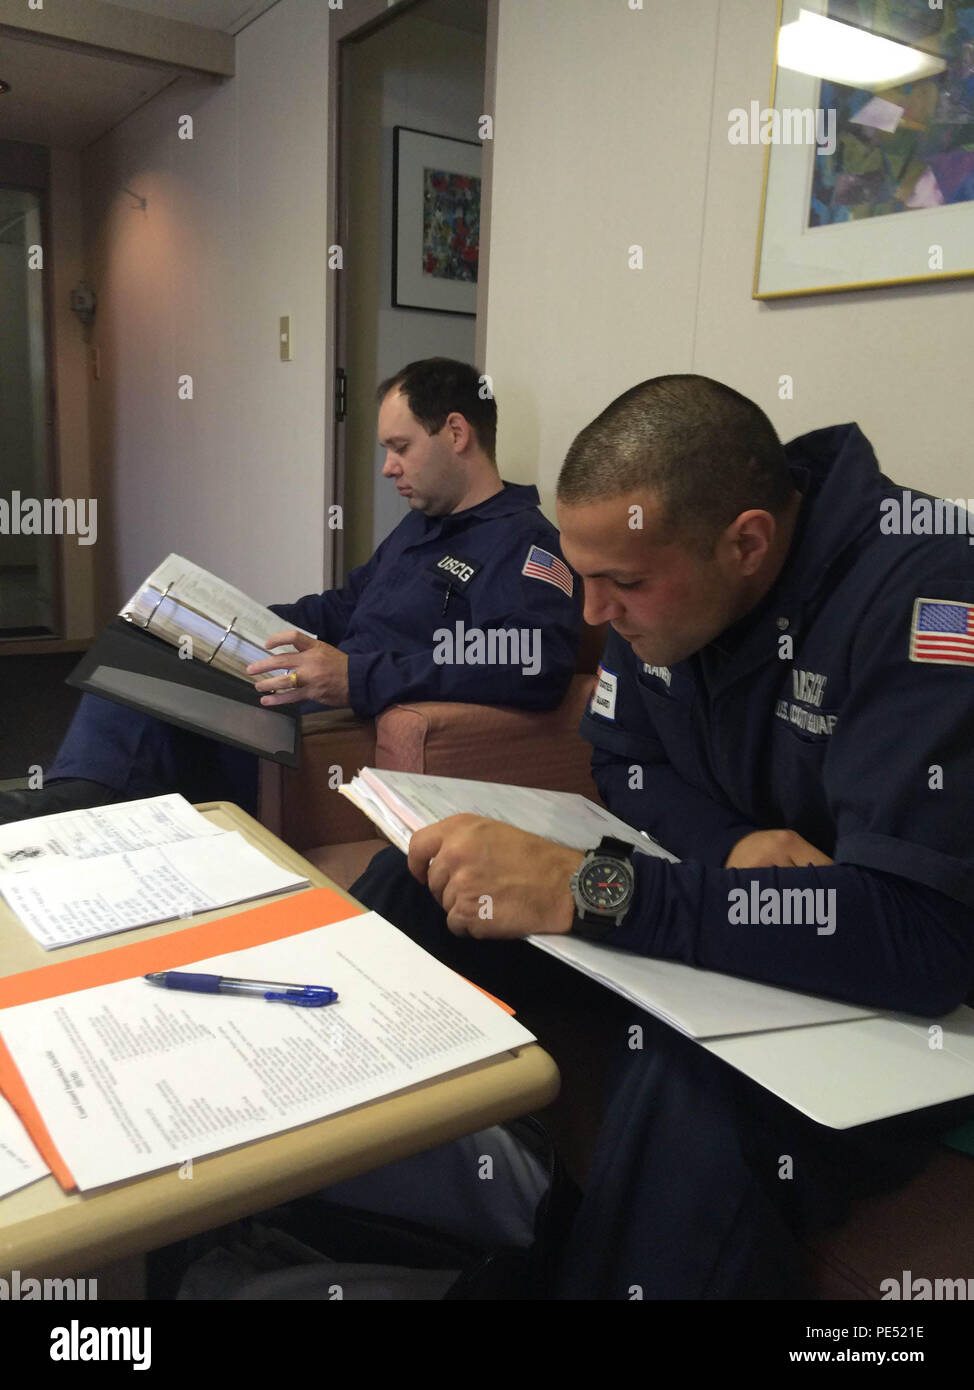 Lt. Peter Raneri and Lt. Matt Arnold, port state control officers at Coast Guard Activities Far East, examine documentation aboard the 656-foot U.S. flagged vehicle carrier ship, Green Lake, at Yokosuka Shinko Port wharf in Yokosuka City, Japan, Sept. 29, 2015. Coast Guardsmen conduct inspections to ensure a vessel has a suitable structure, correct documentation, proper working equipment and lifesaving equipment and adequate accommodations. (U.S. Coast Guard photo by Lt. Kenn Yuen/Released) - Stock Image